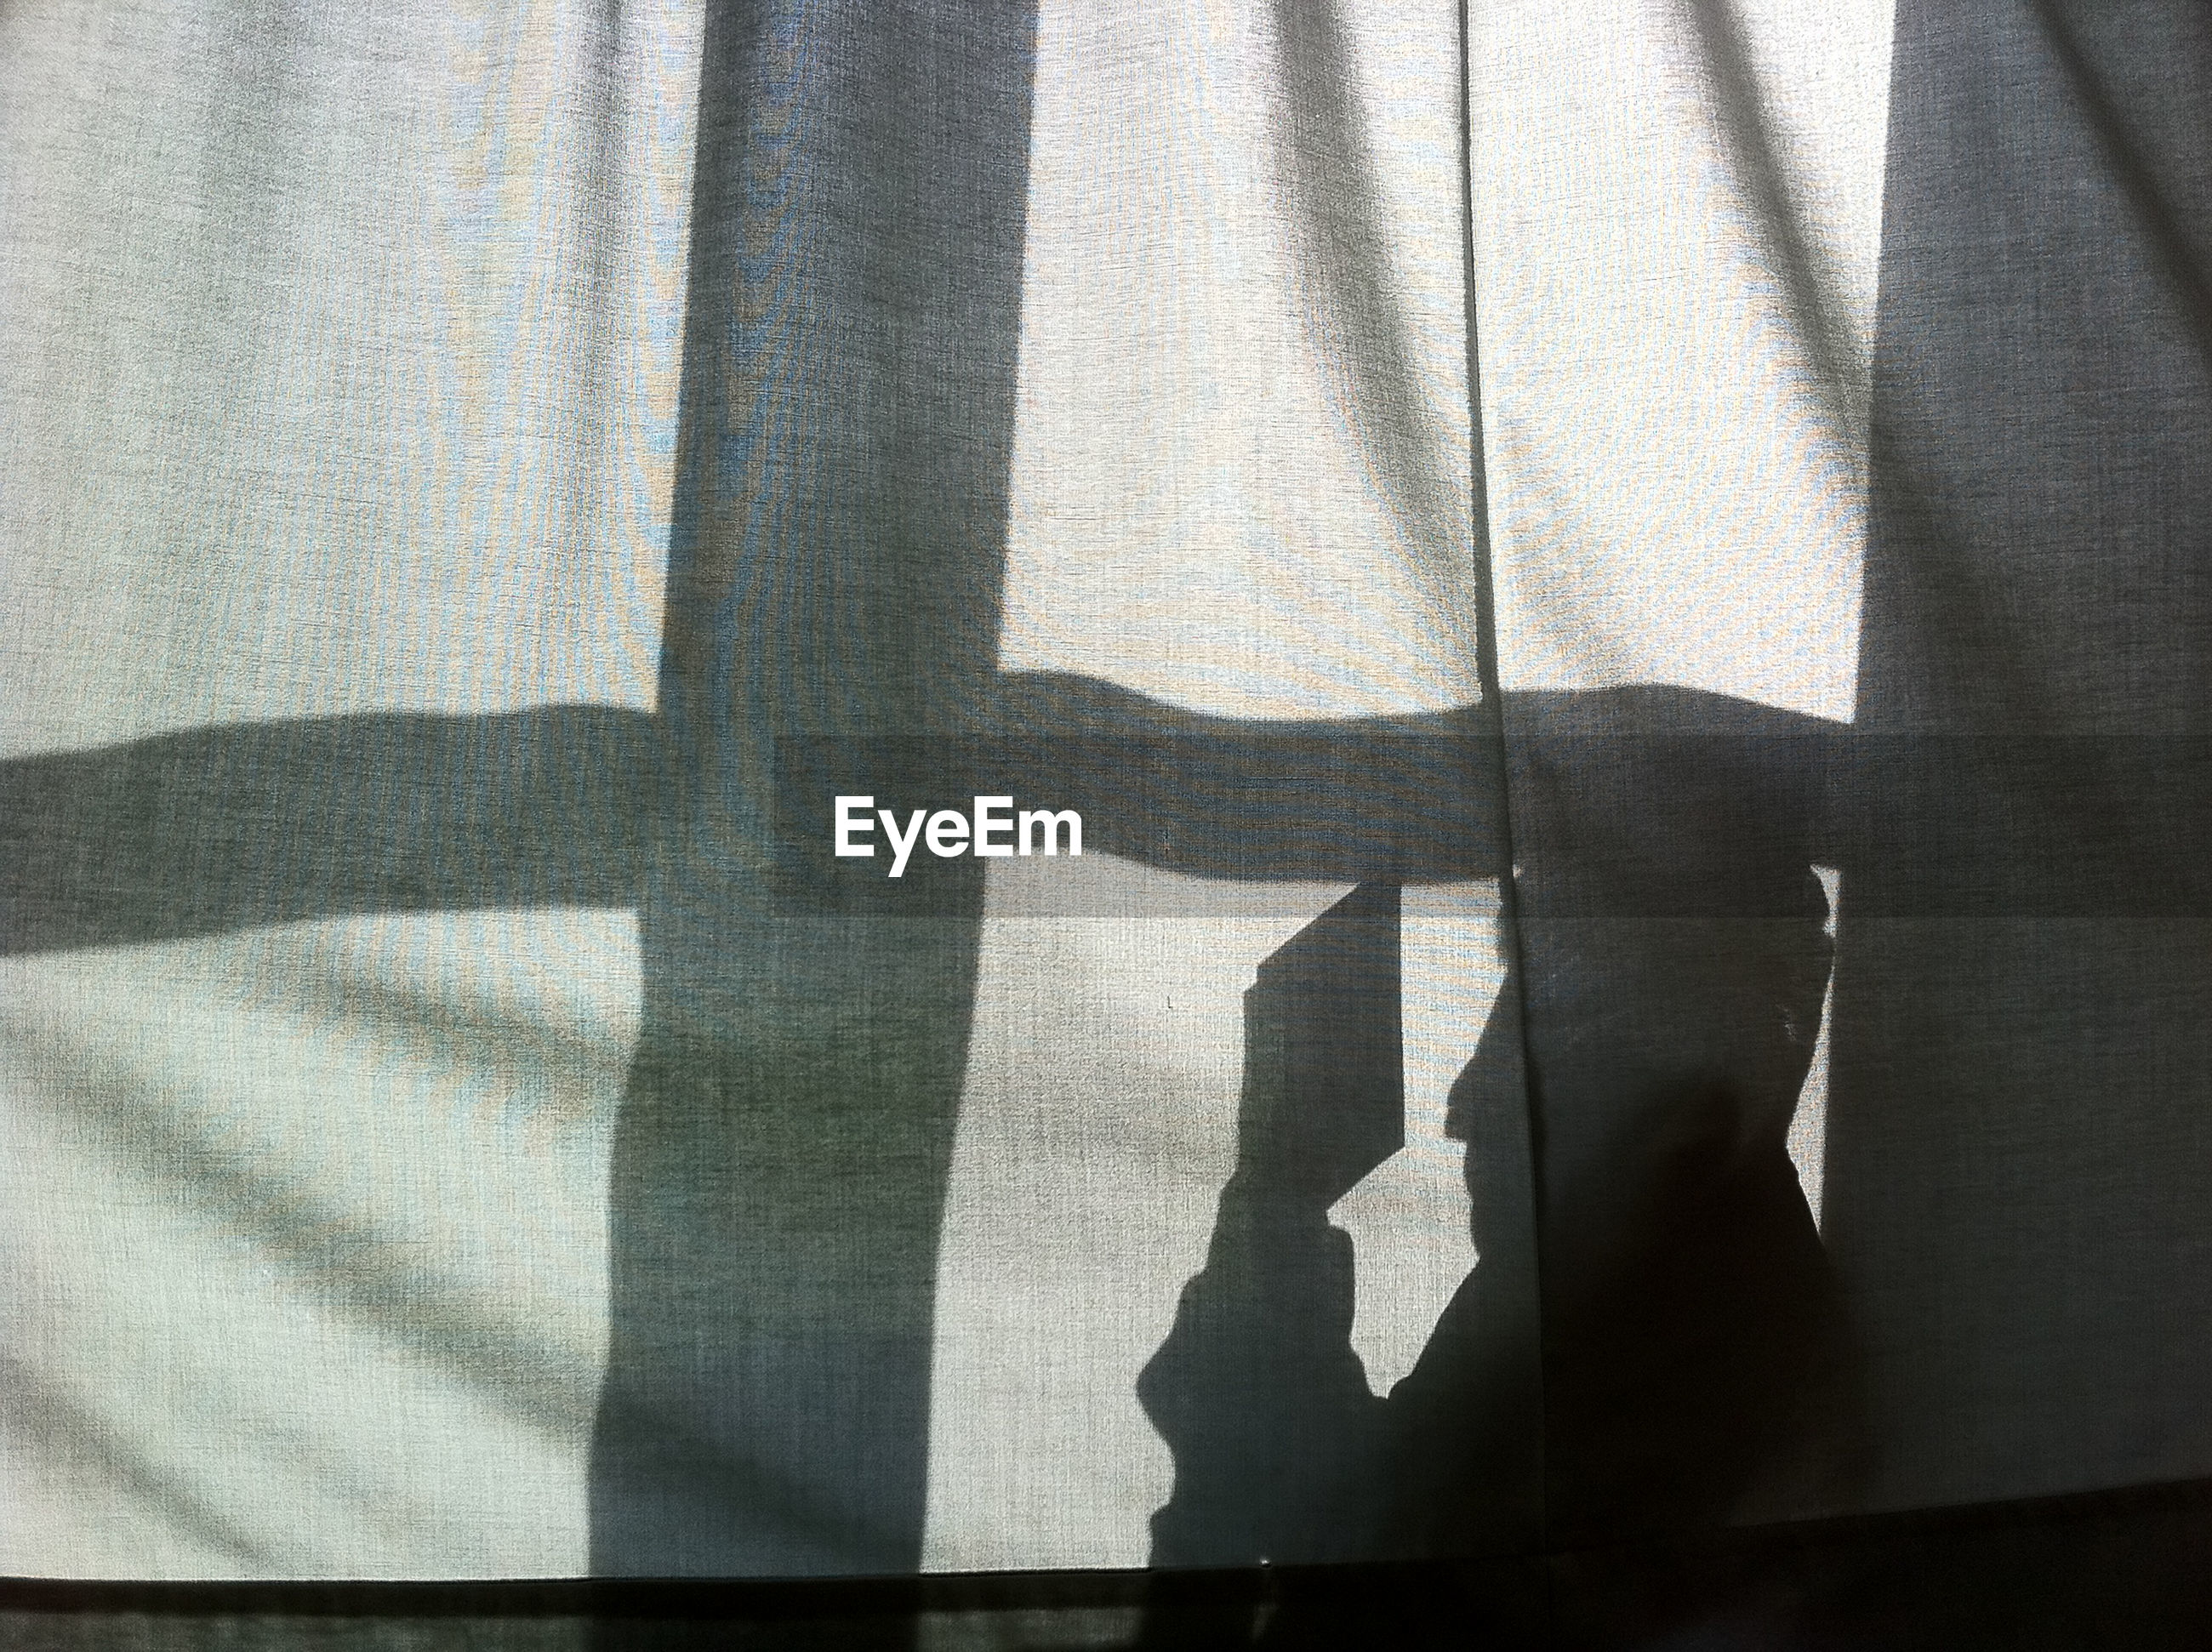 Shadow of person reading book behind curtain